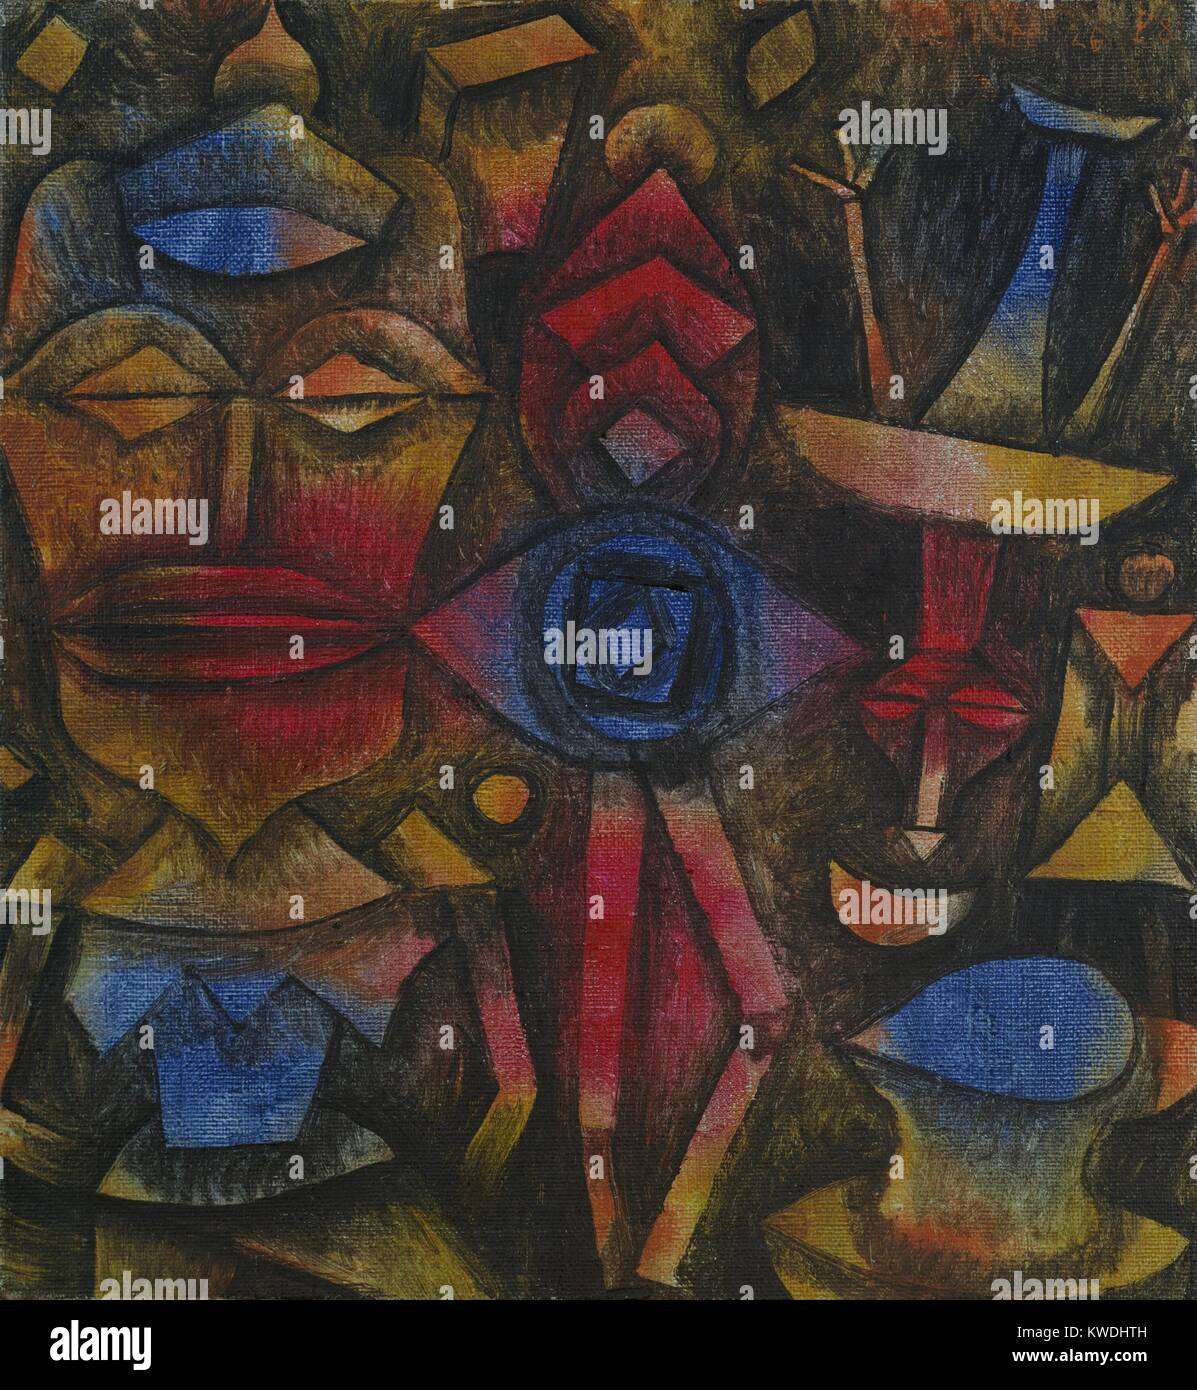 COLLECTION OF FIGURINES, by Paul Klee, 1926, Swiss painting, oil on canvas. Humanoid figures with unnaturalistic - Stock Image